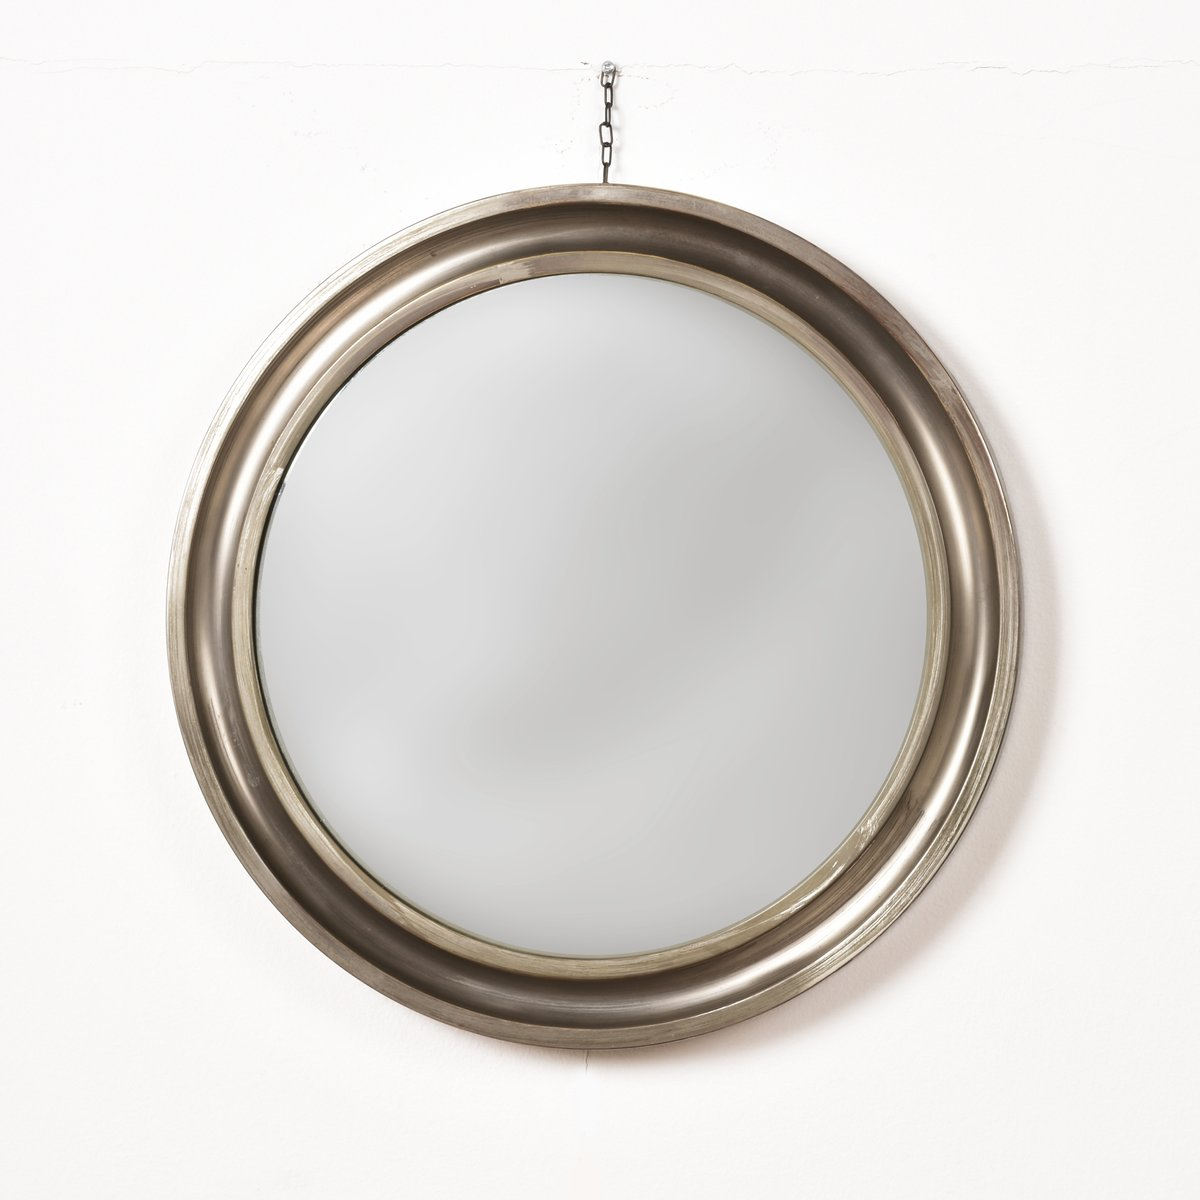 round mirror with metal frame by sergio mazza for artemide 1961 for sale at pamono. Black Bedroom Furniture Sets. Home Design Ideas